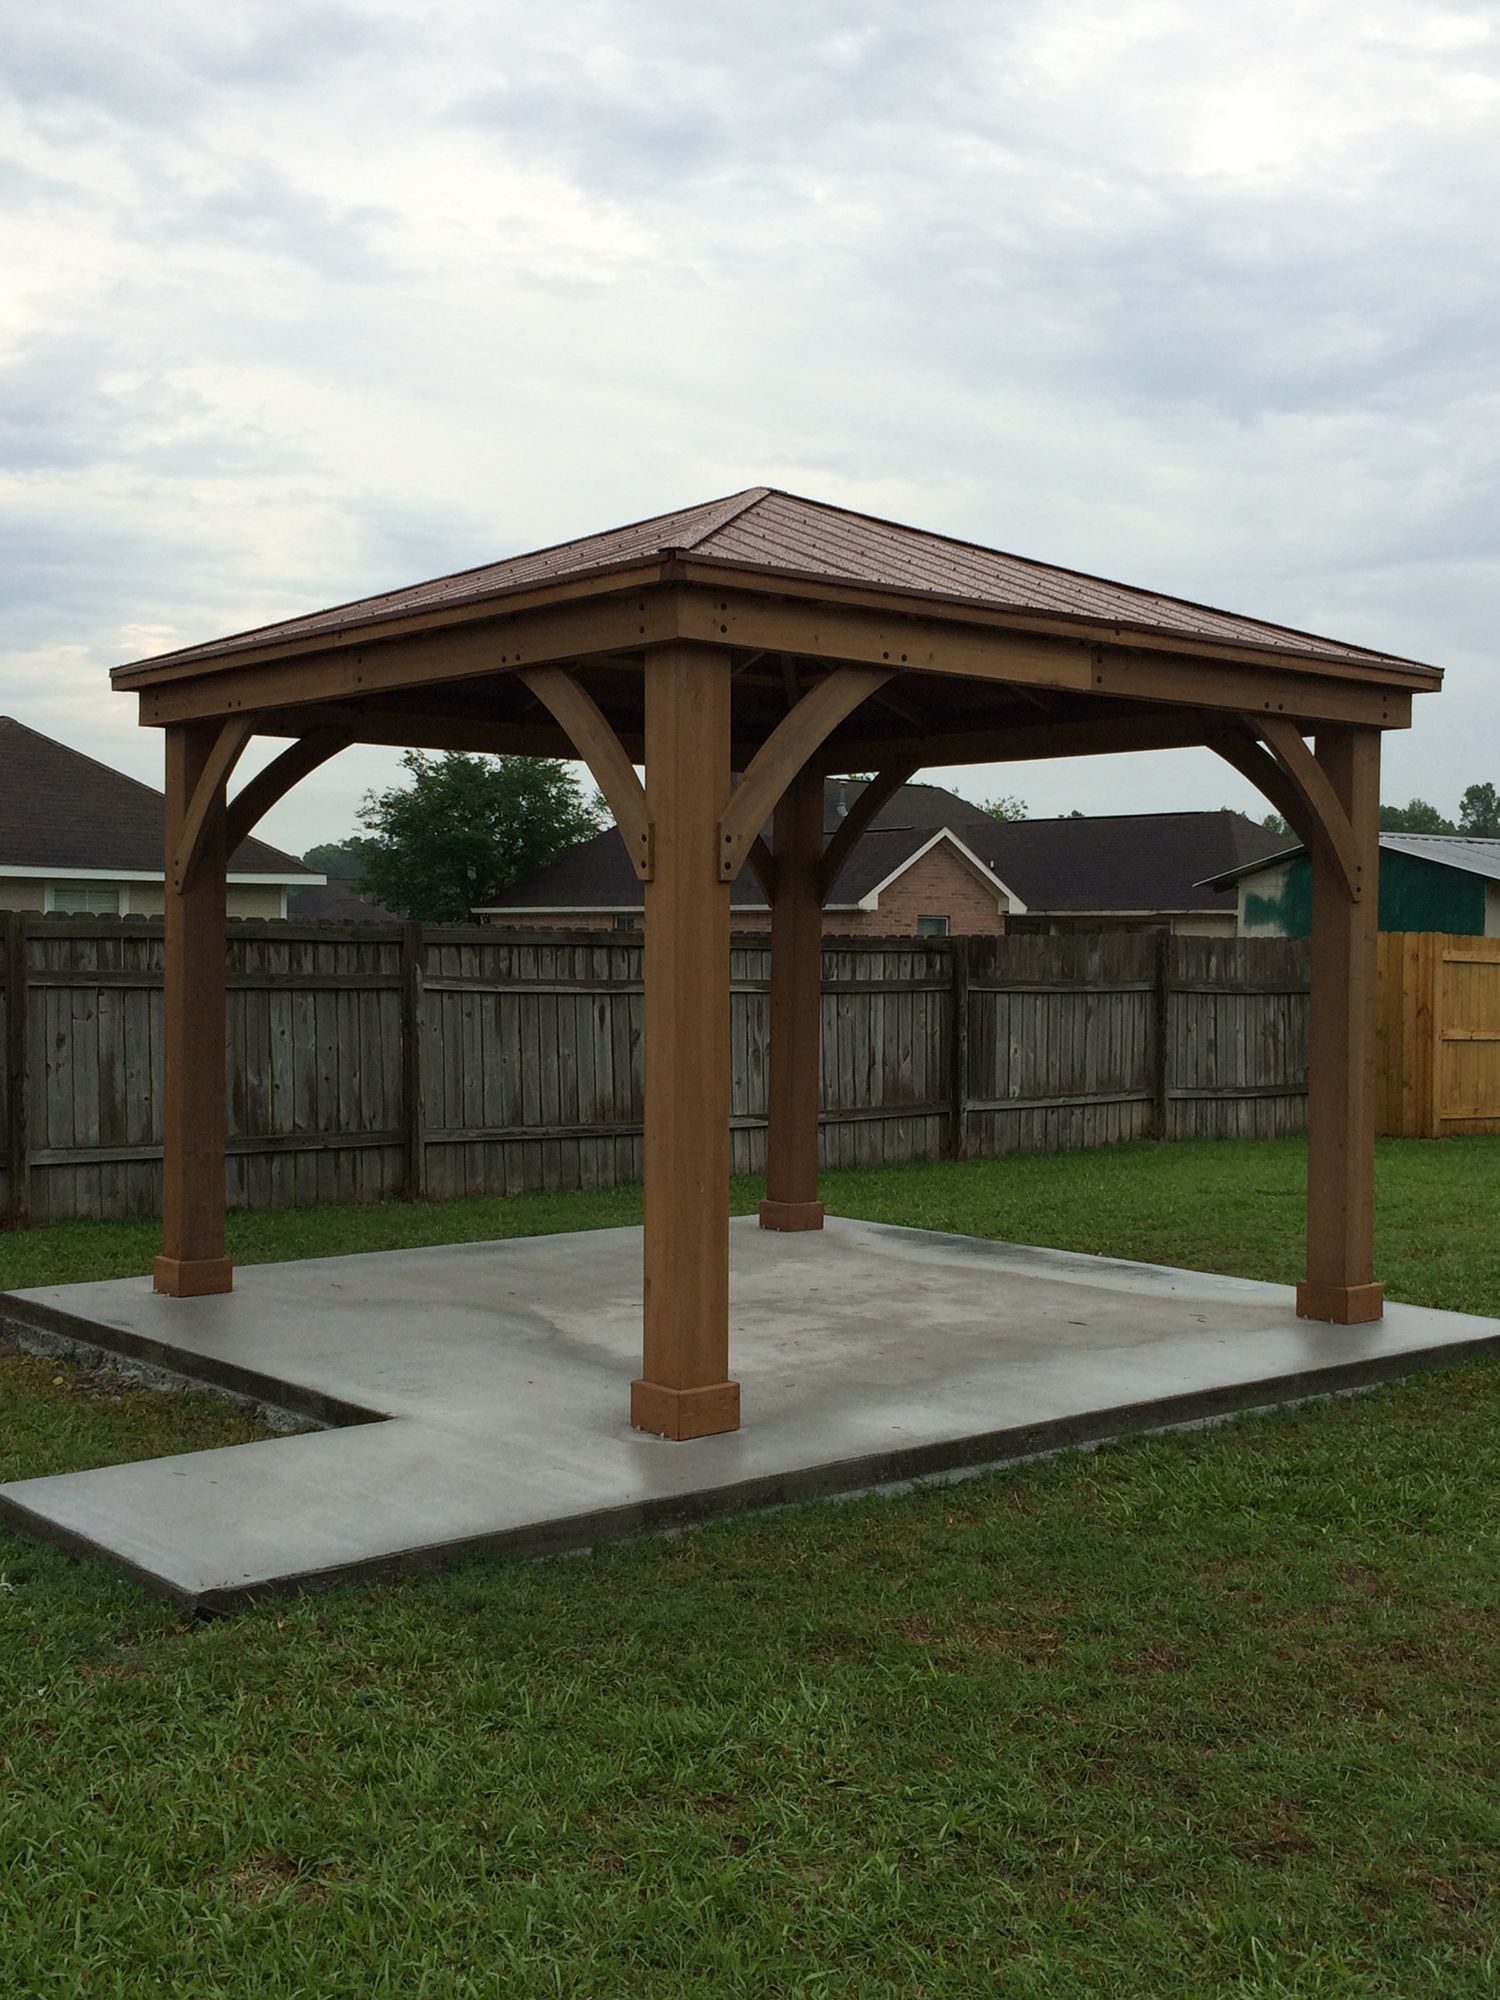 Projects of gazebos with barbecue. Pavilions with barbecue and barbecue